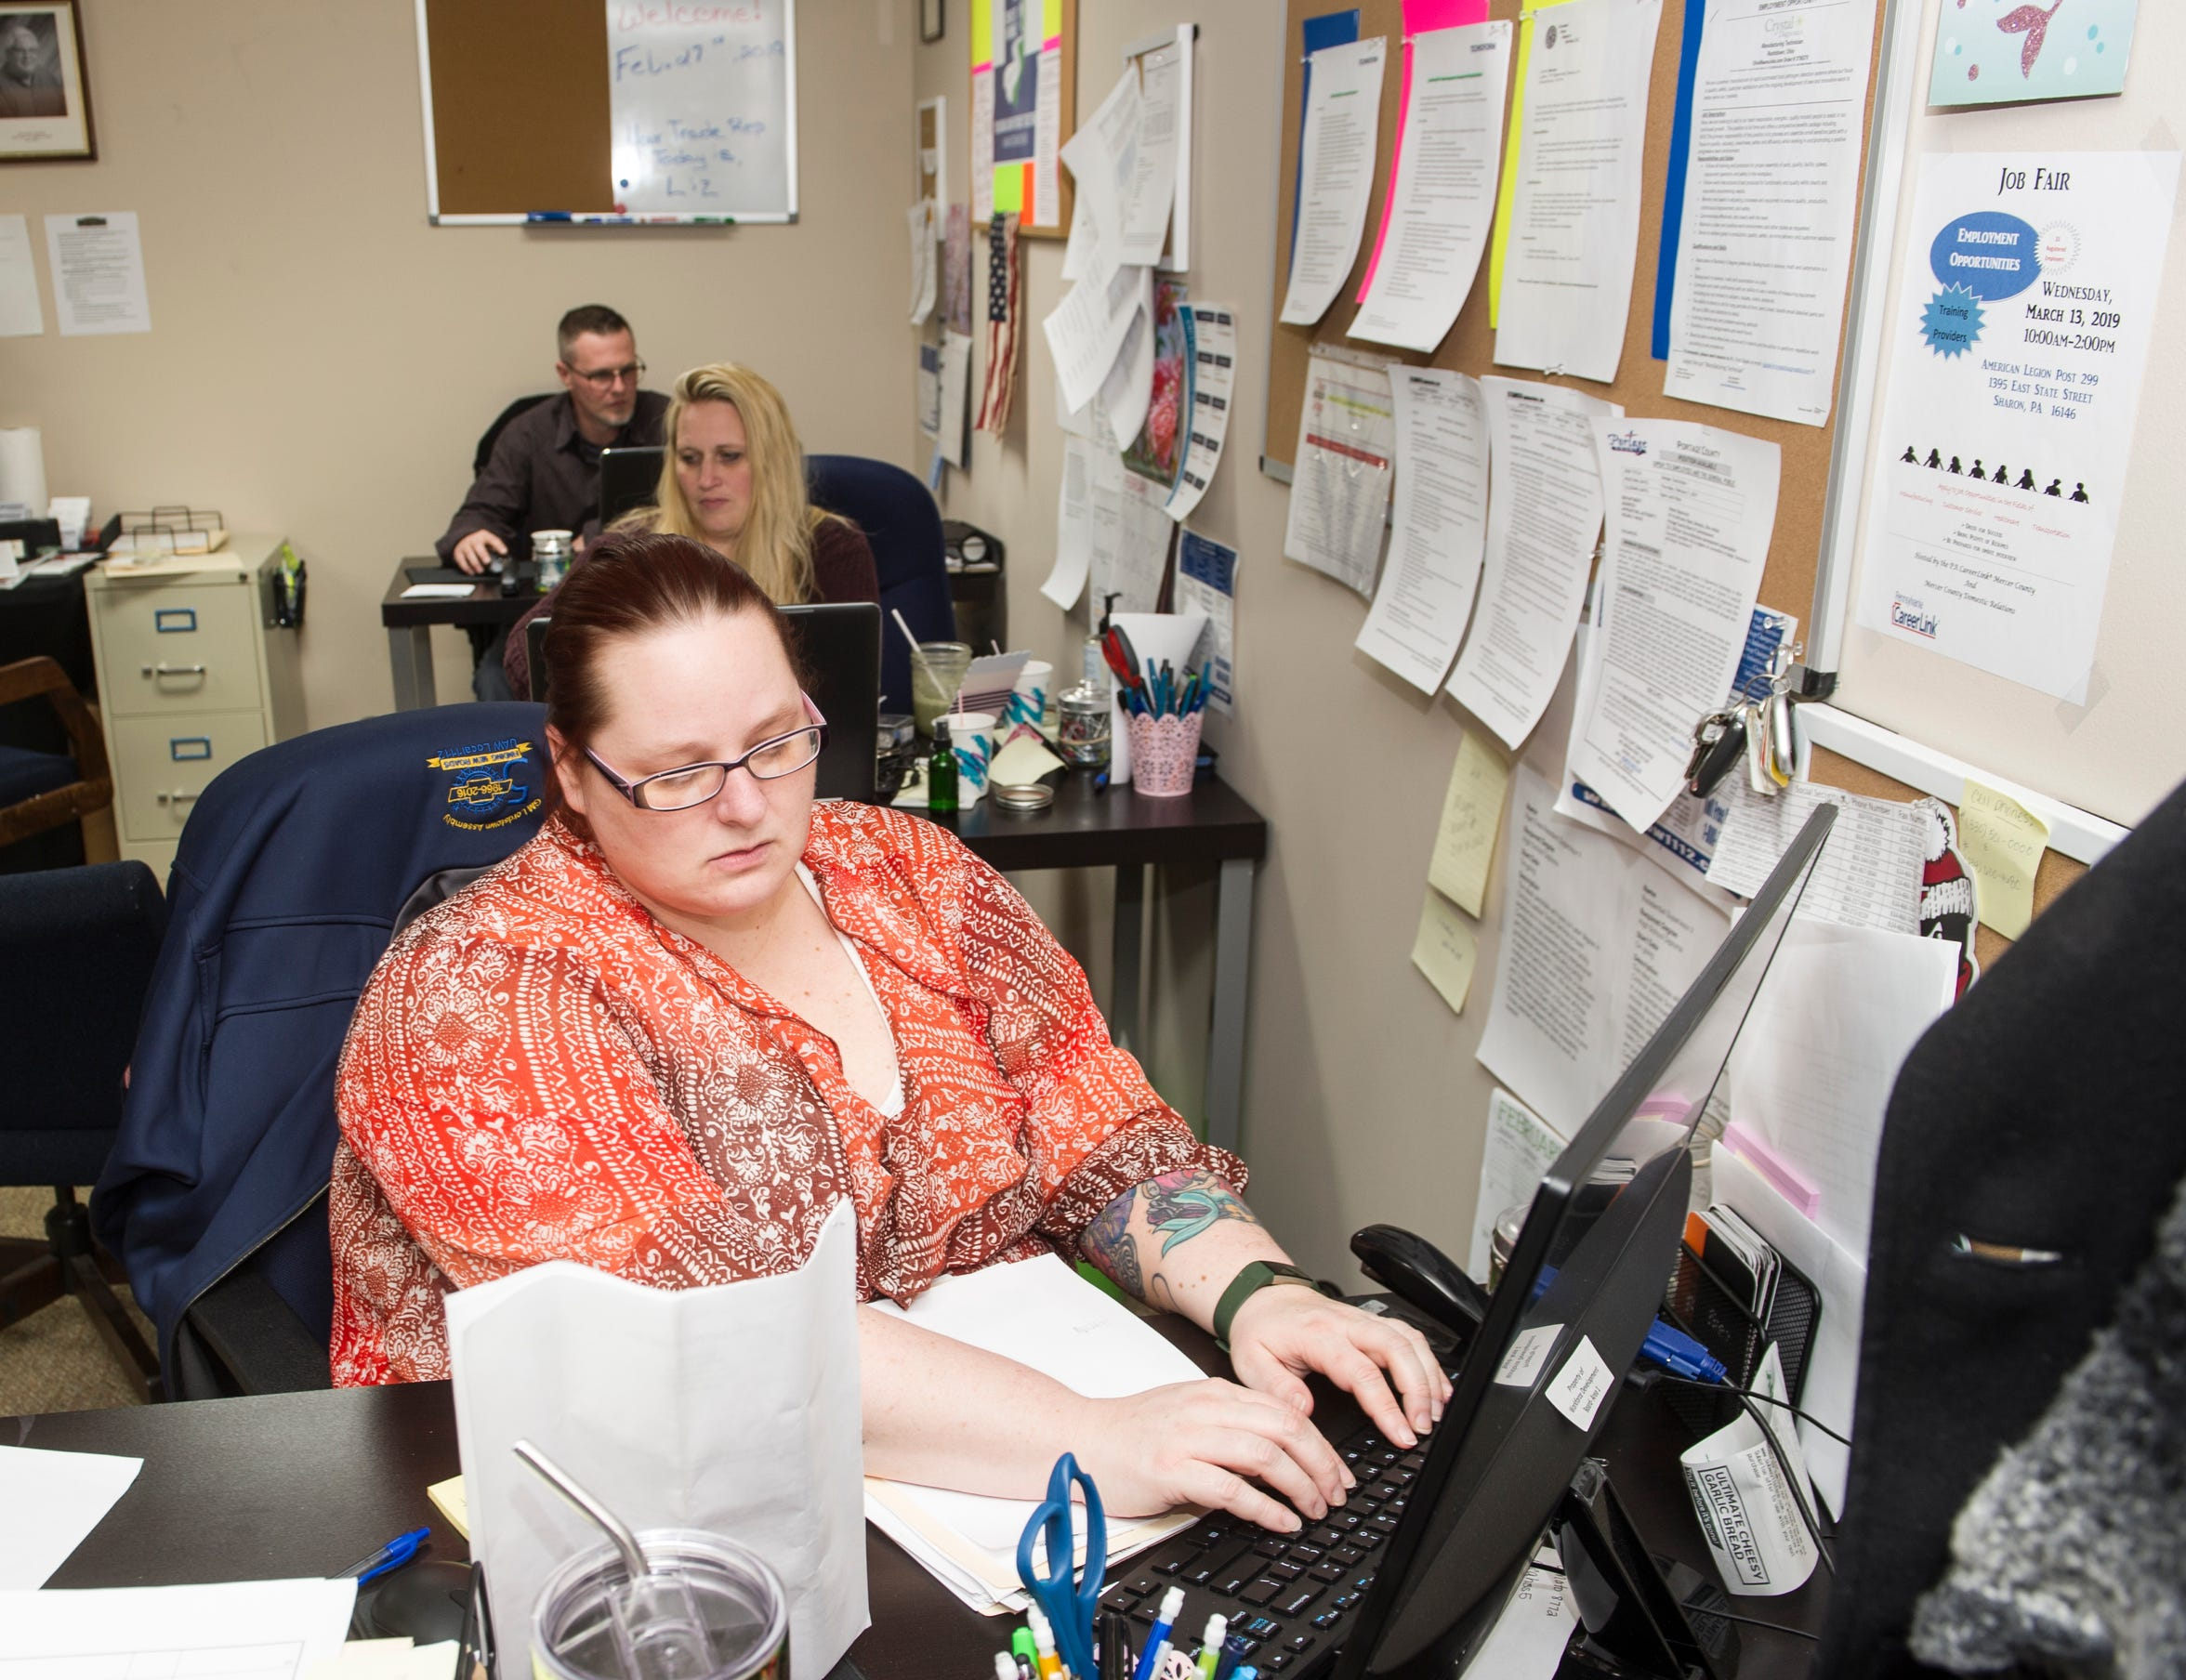 Trisha Amato of Poland, Ohio, types in the resume of a GM worker at the UAW Local 1112 Transition Center near the GM Lordstown plant on Wednesday, Feb. 27.